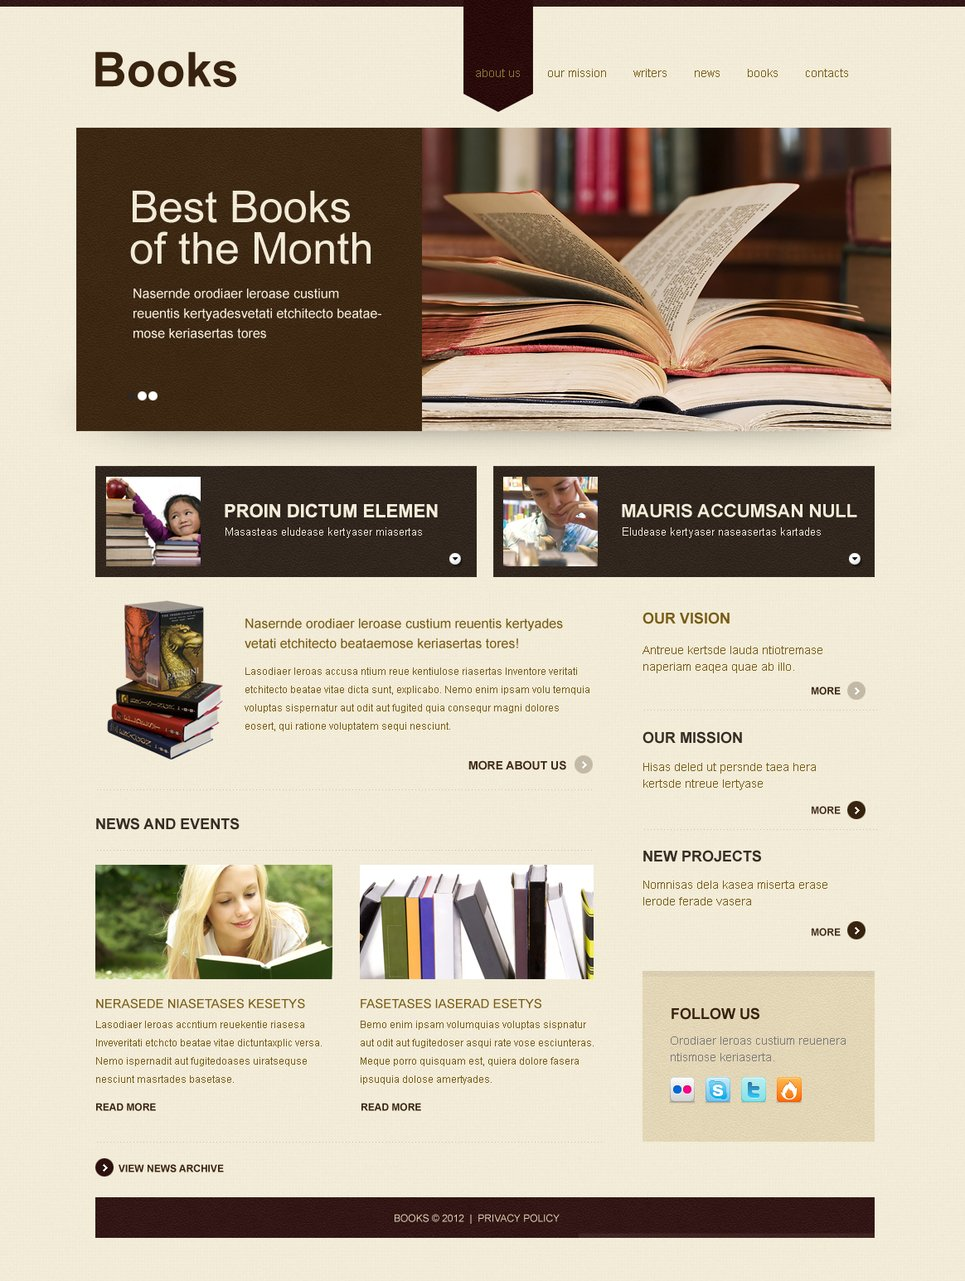 Books Website Template for Writers and Editorial Offices - image